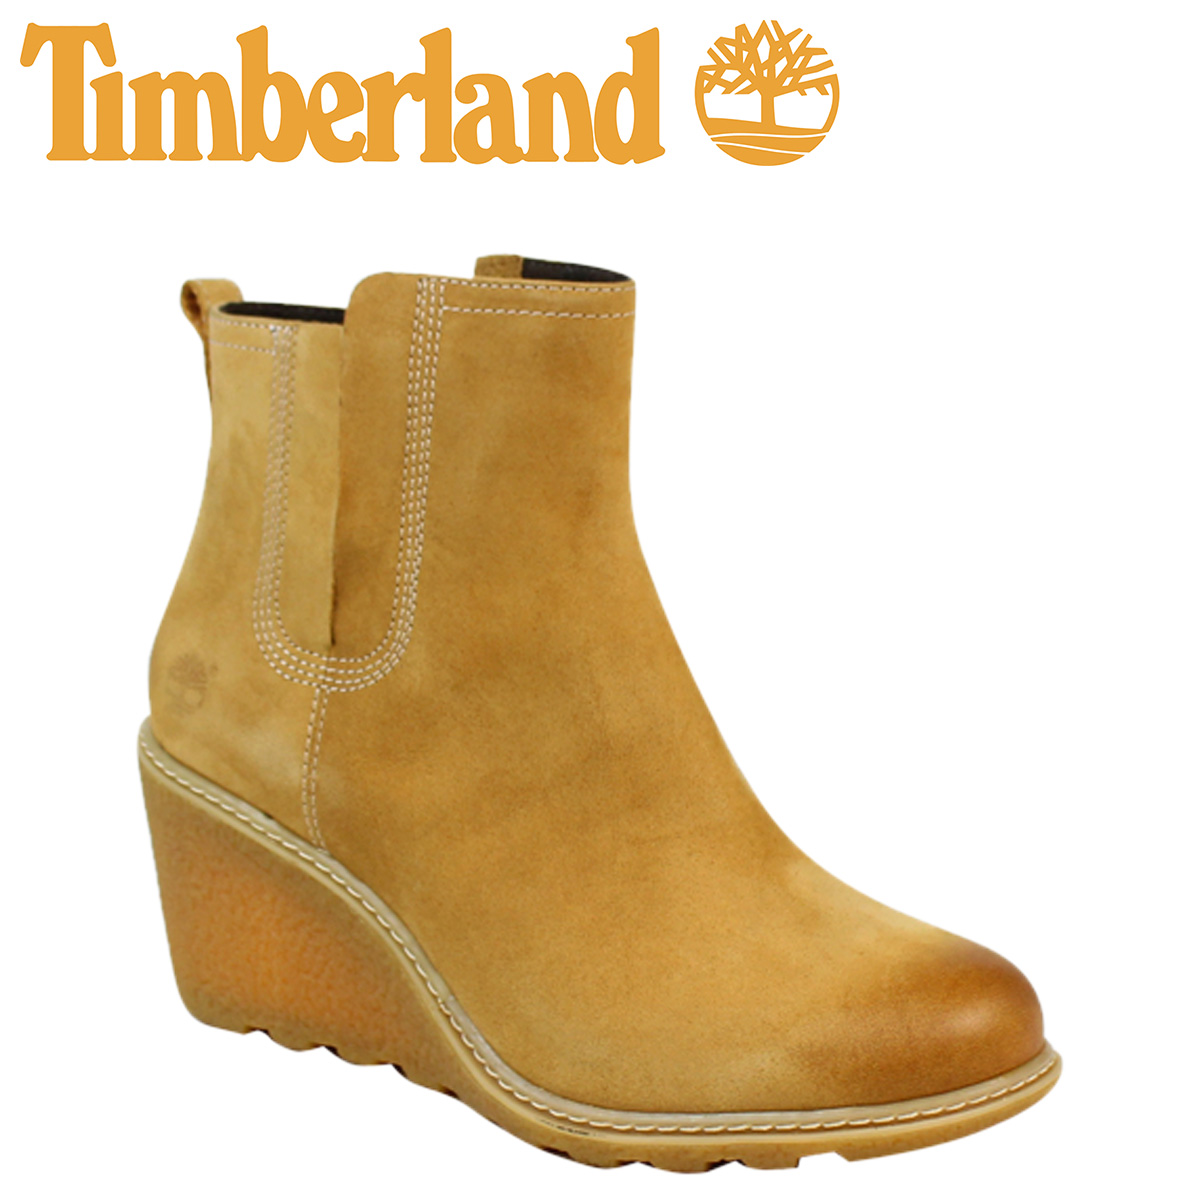 9ddcffc25e0 Whats up Sports   SOLD OUT  Timberland Timberland women s ...